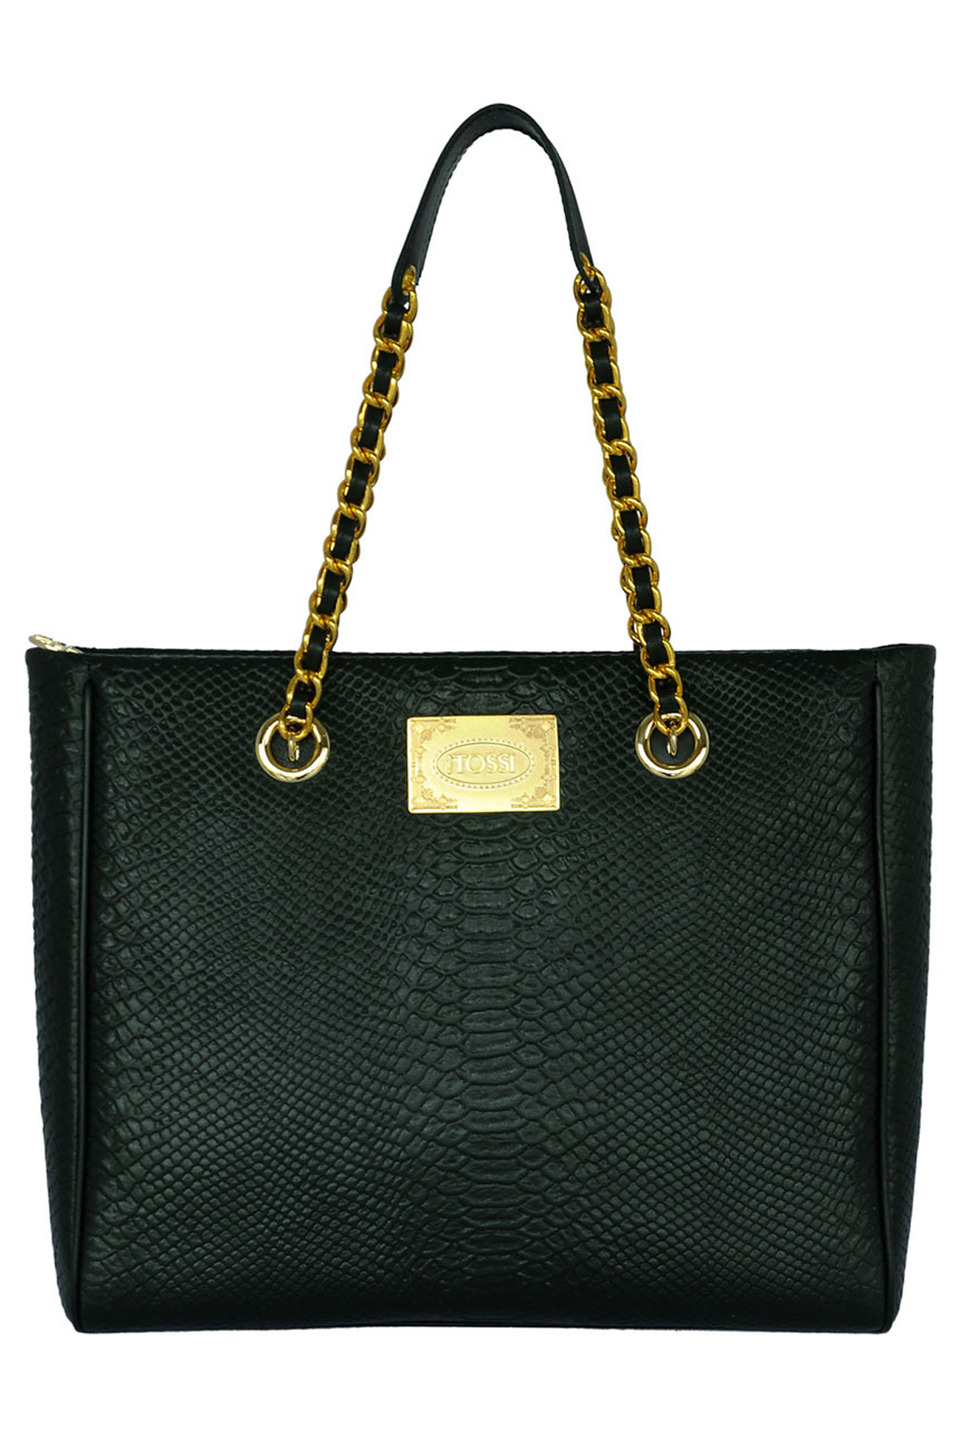 AIMEE HANDBAG IN DARK OLIVE